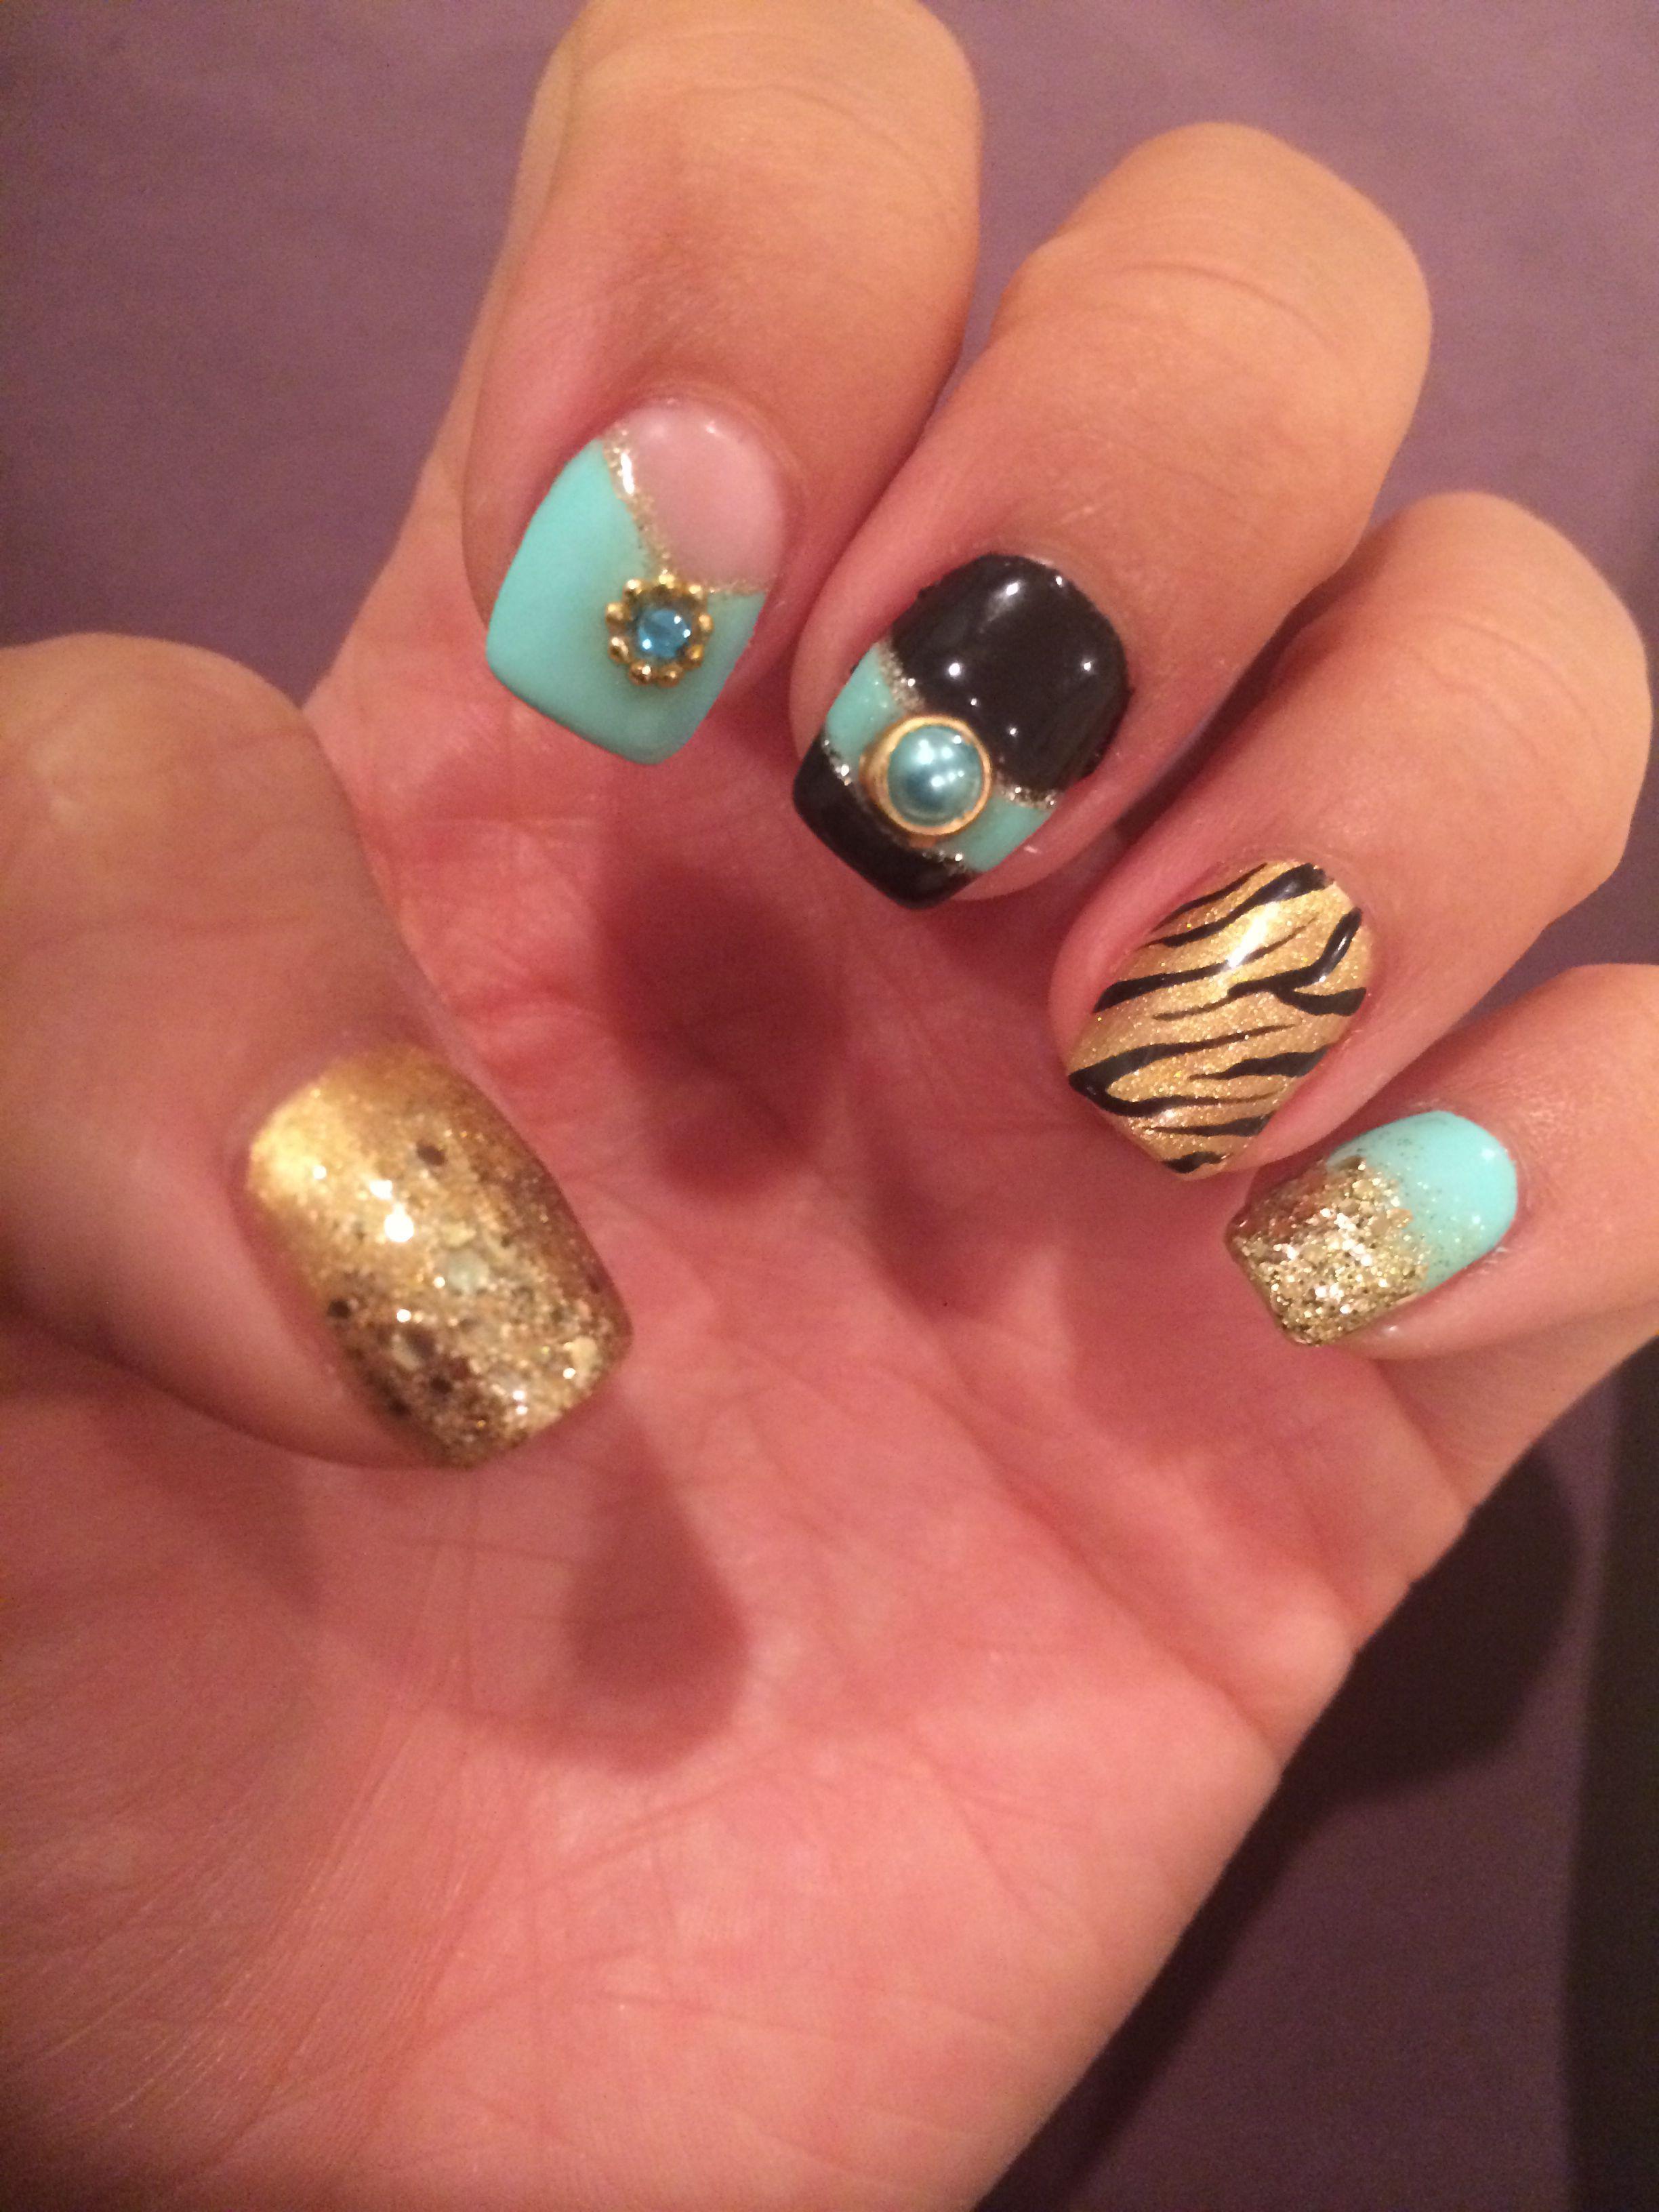 Princess jasmine nails - Disney Aladdin nail art | Girly ...